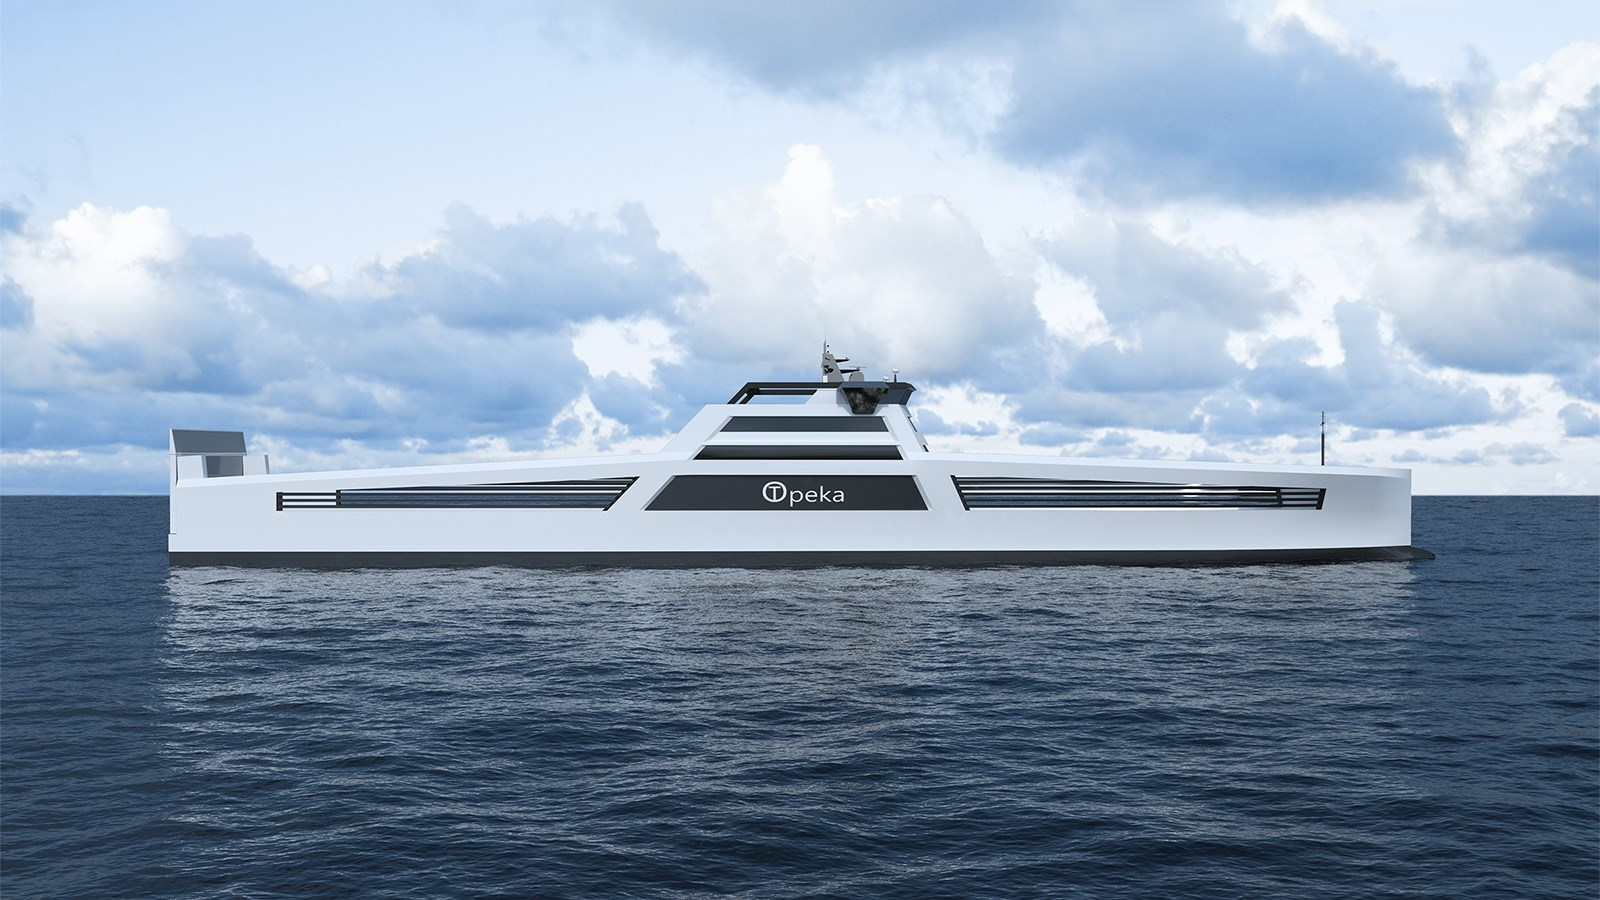 Hydrogen ship project wins Enova funding - Offshore Energy